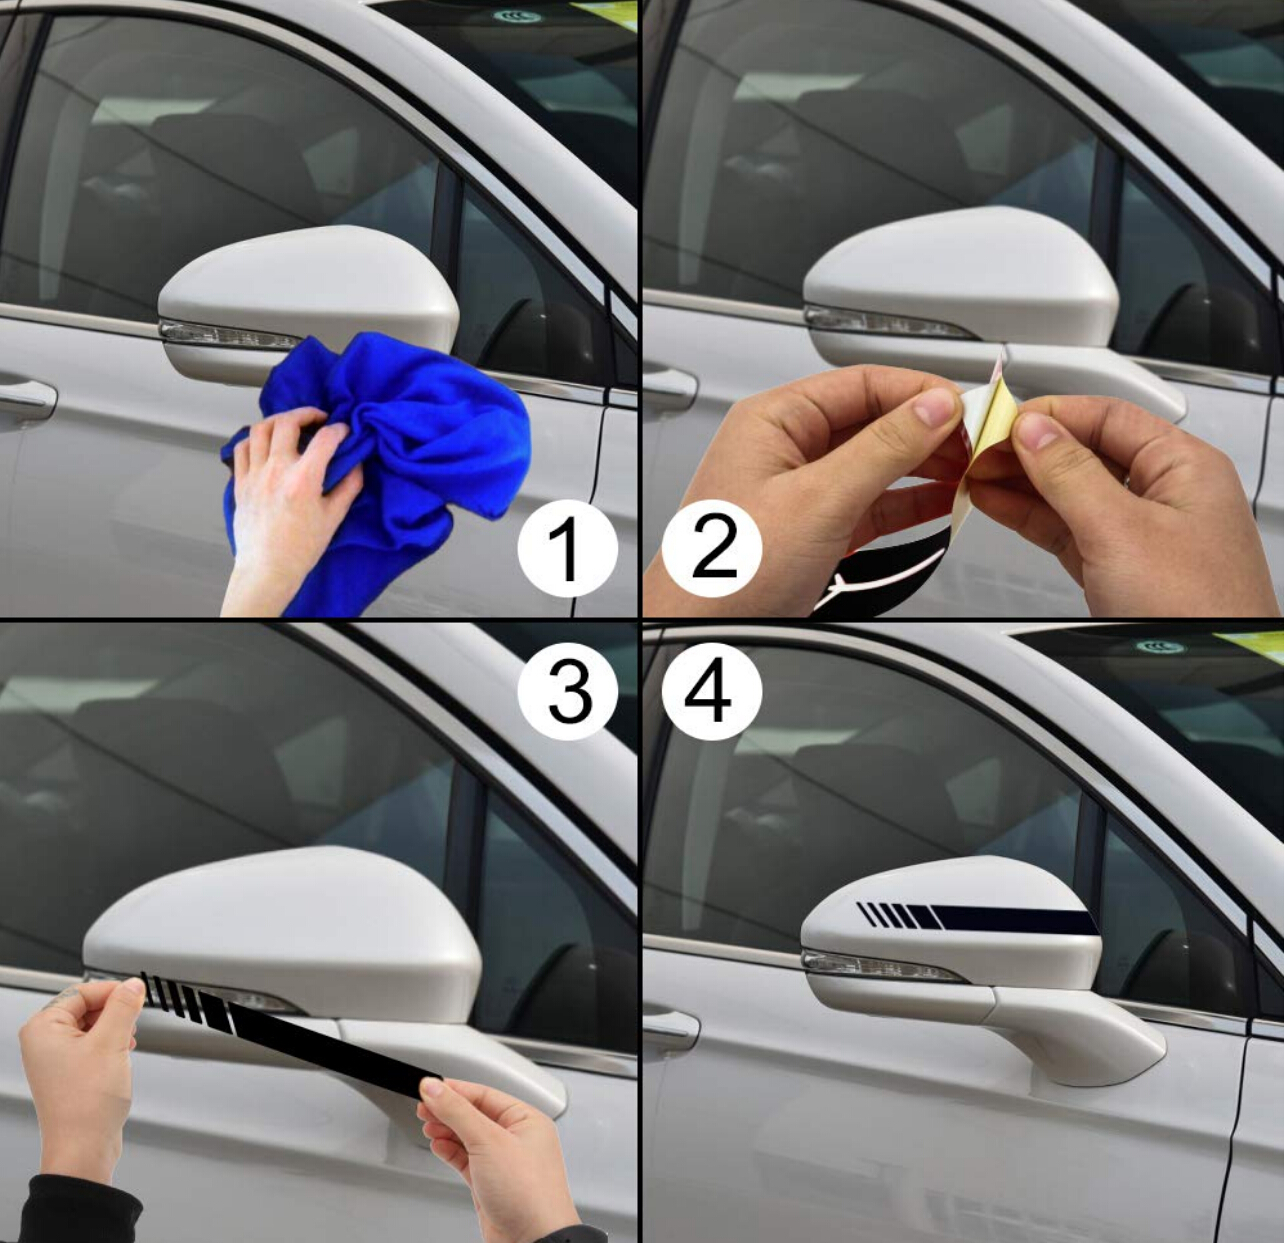 Exterior Accessories Reasonable 2018 Hot Car Wash Microfiber Towel For Opel Astra H Bmw F30 E36 Citroen C1 Vw Caddy Volvo V50 Alfa Romeo E46 Vw Ford Focus Soft And Antislippery Car Tax Disc Holders